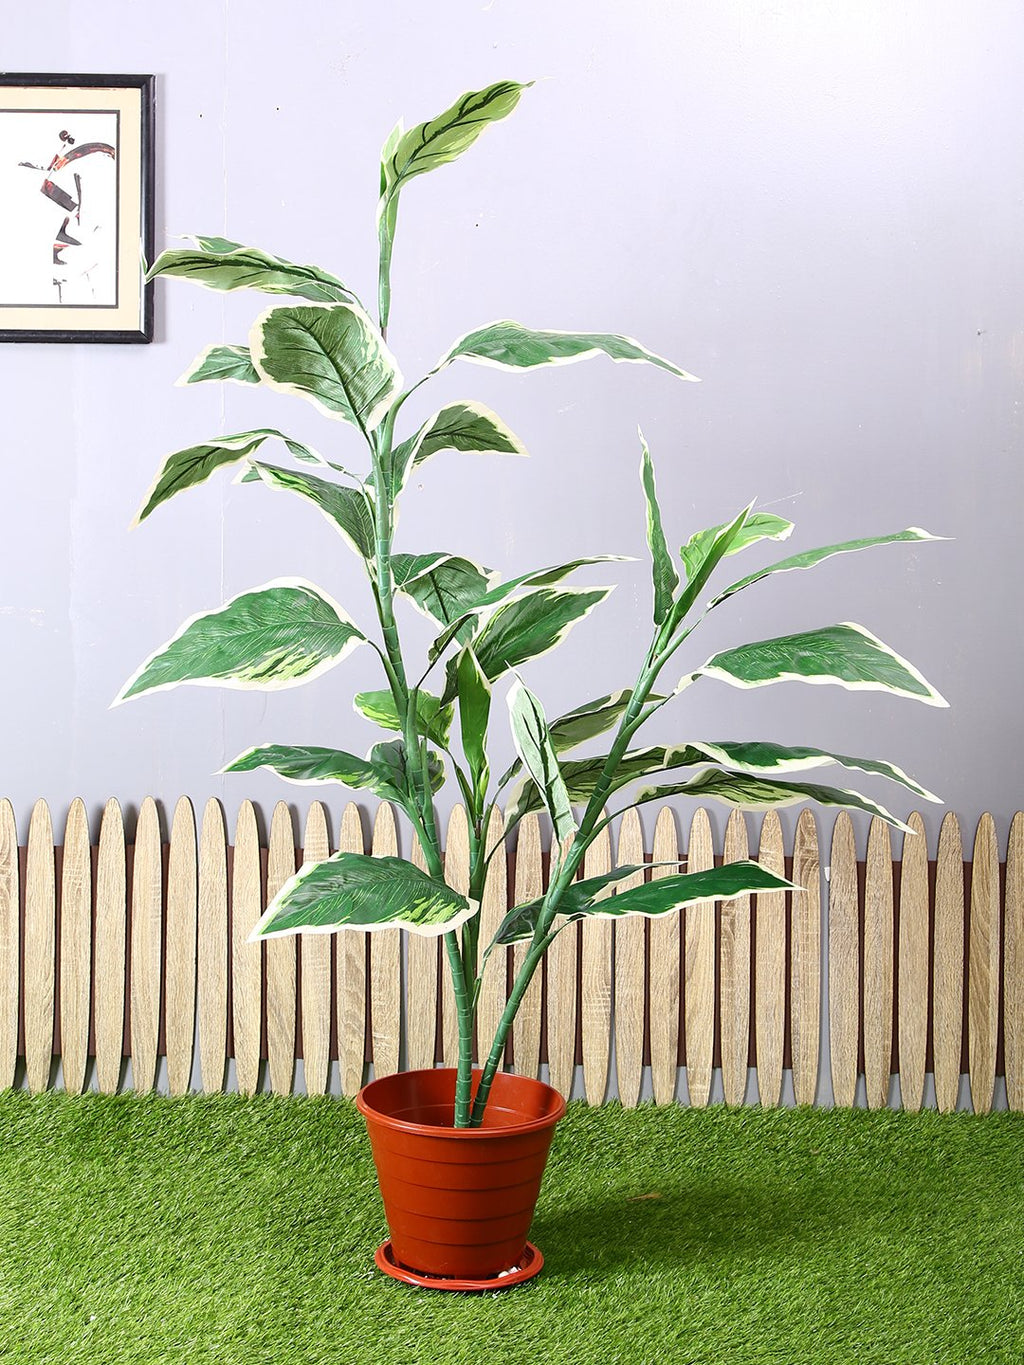 PolliNation Hosta Green Artificial Plant Without Pot for Home Decoration (L 100 cm X H 153 cm) - Artificial Flowers & Plants - PolliNation